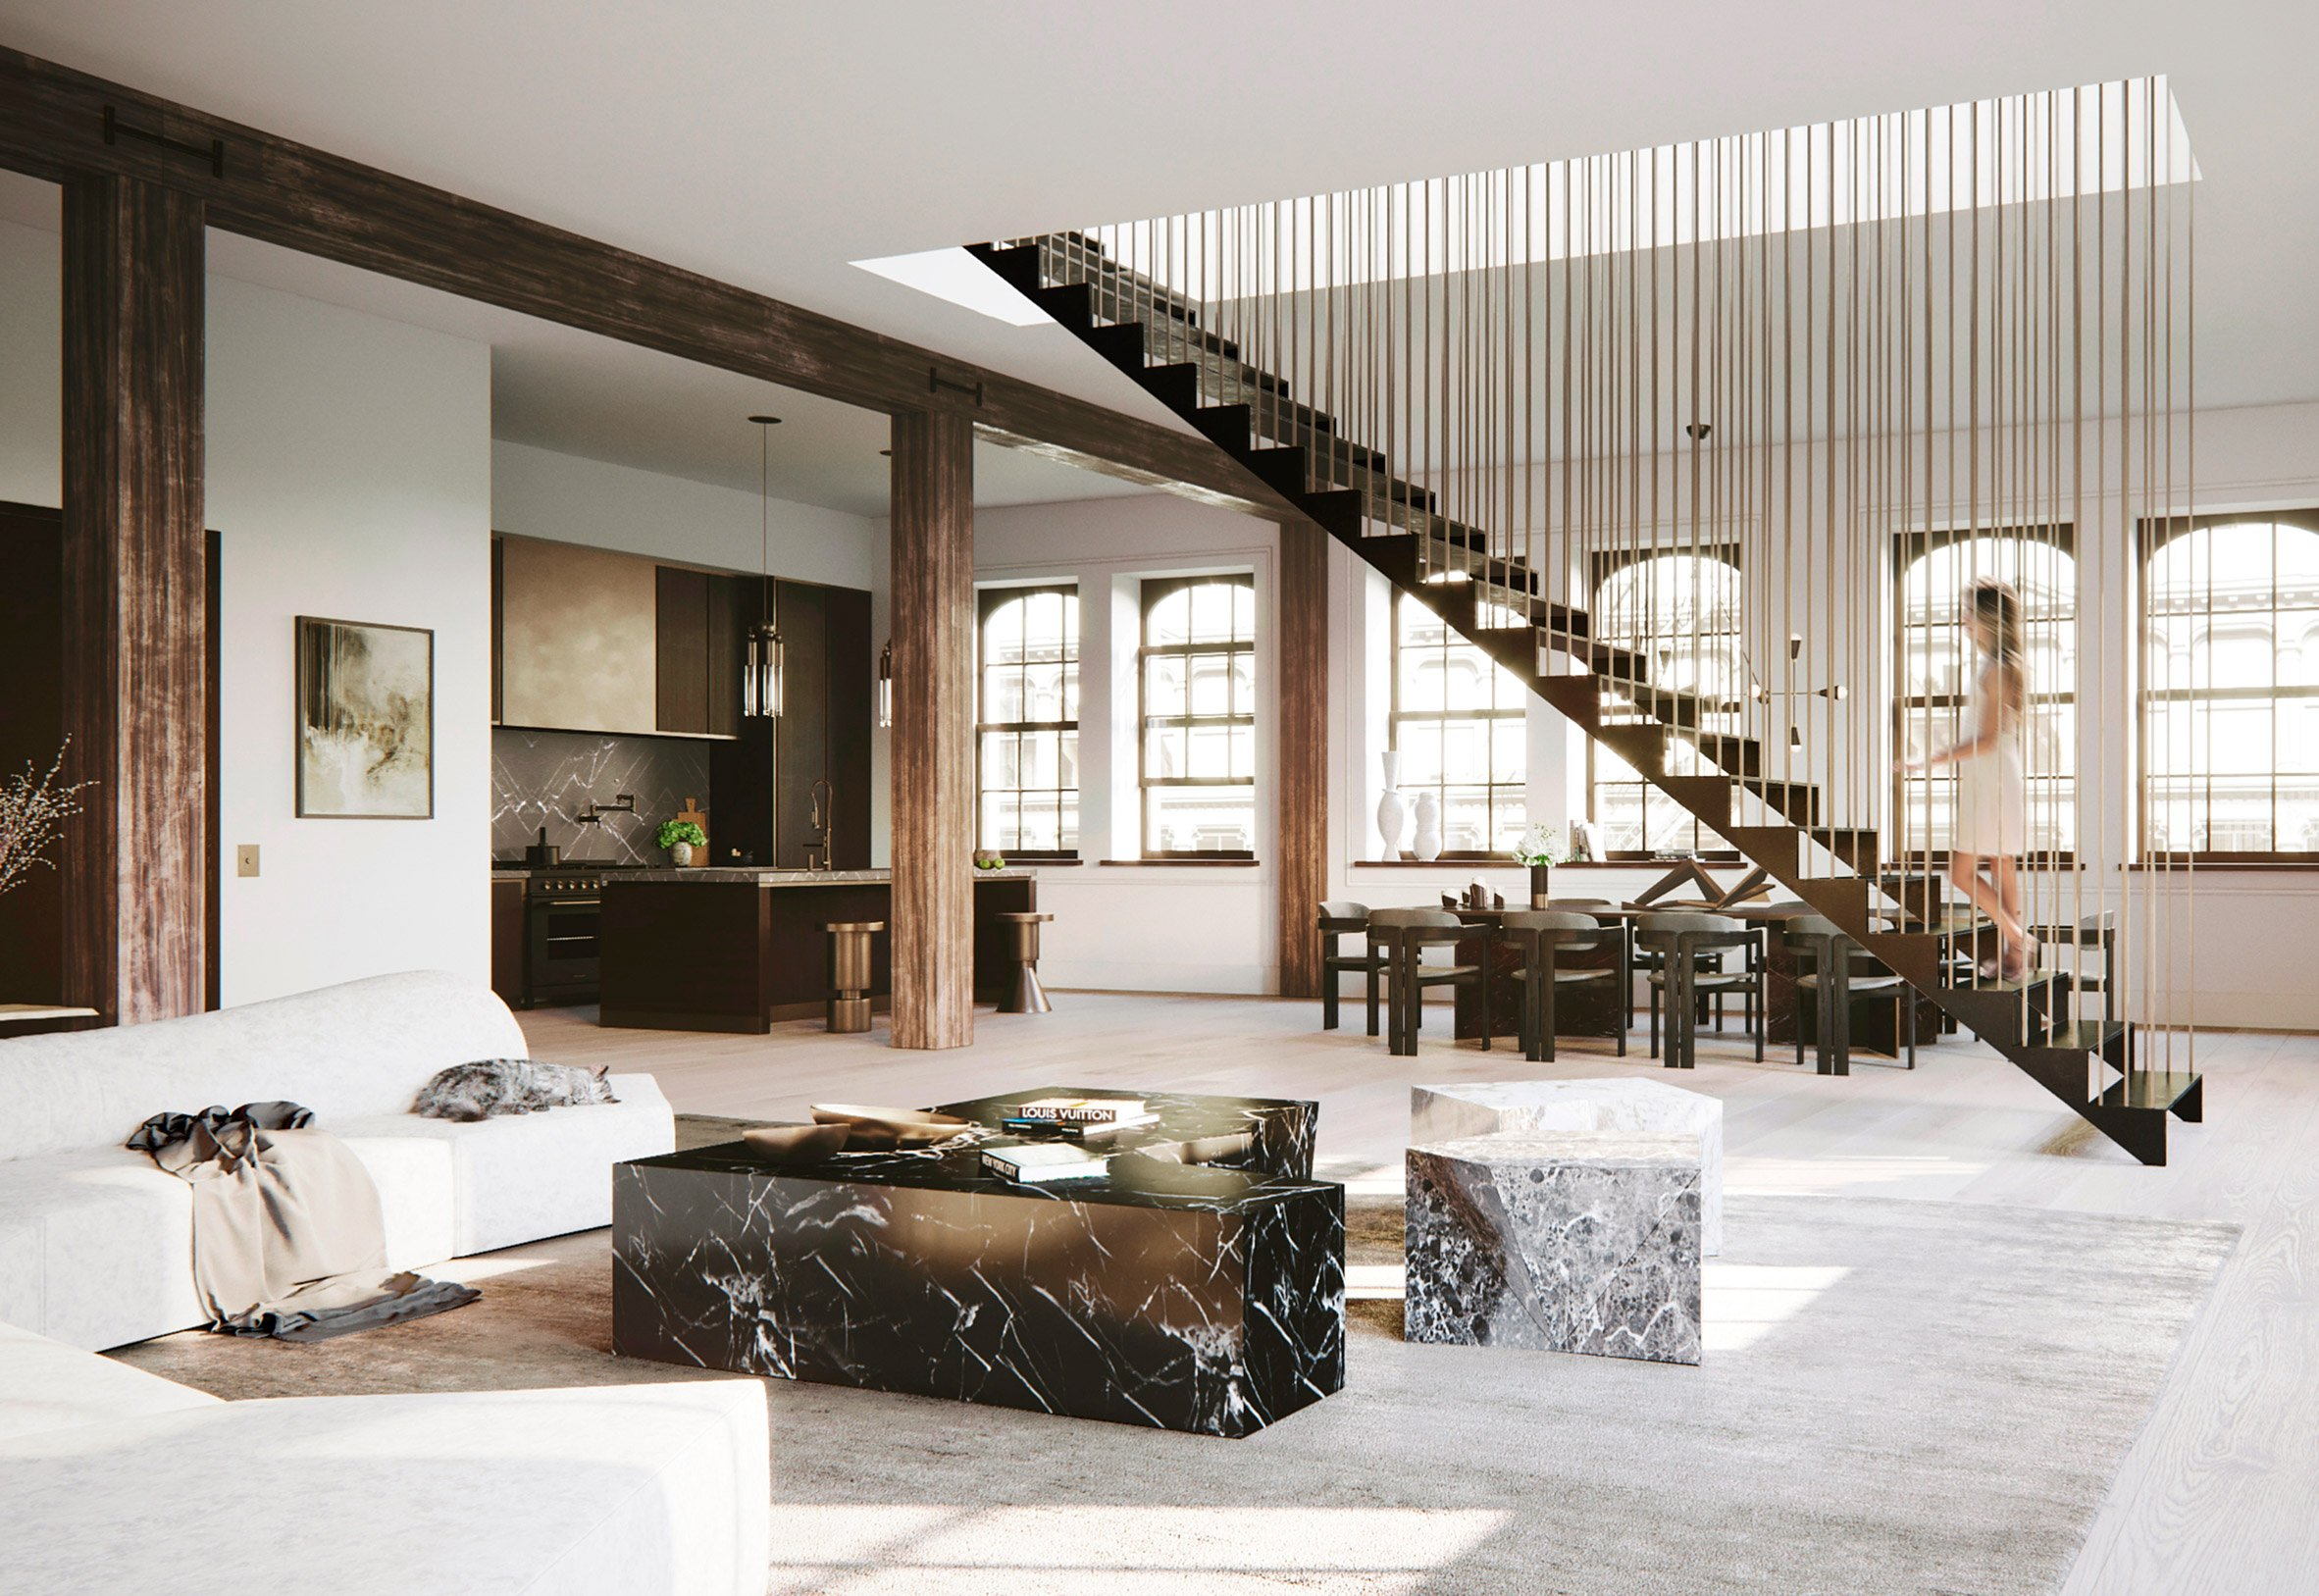 hanging staircase divides spacious new york loft by djds. Black Bedroom Furniture Sets. Home Design Ideas